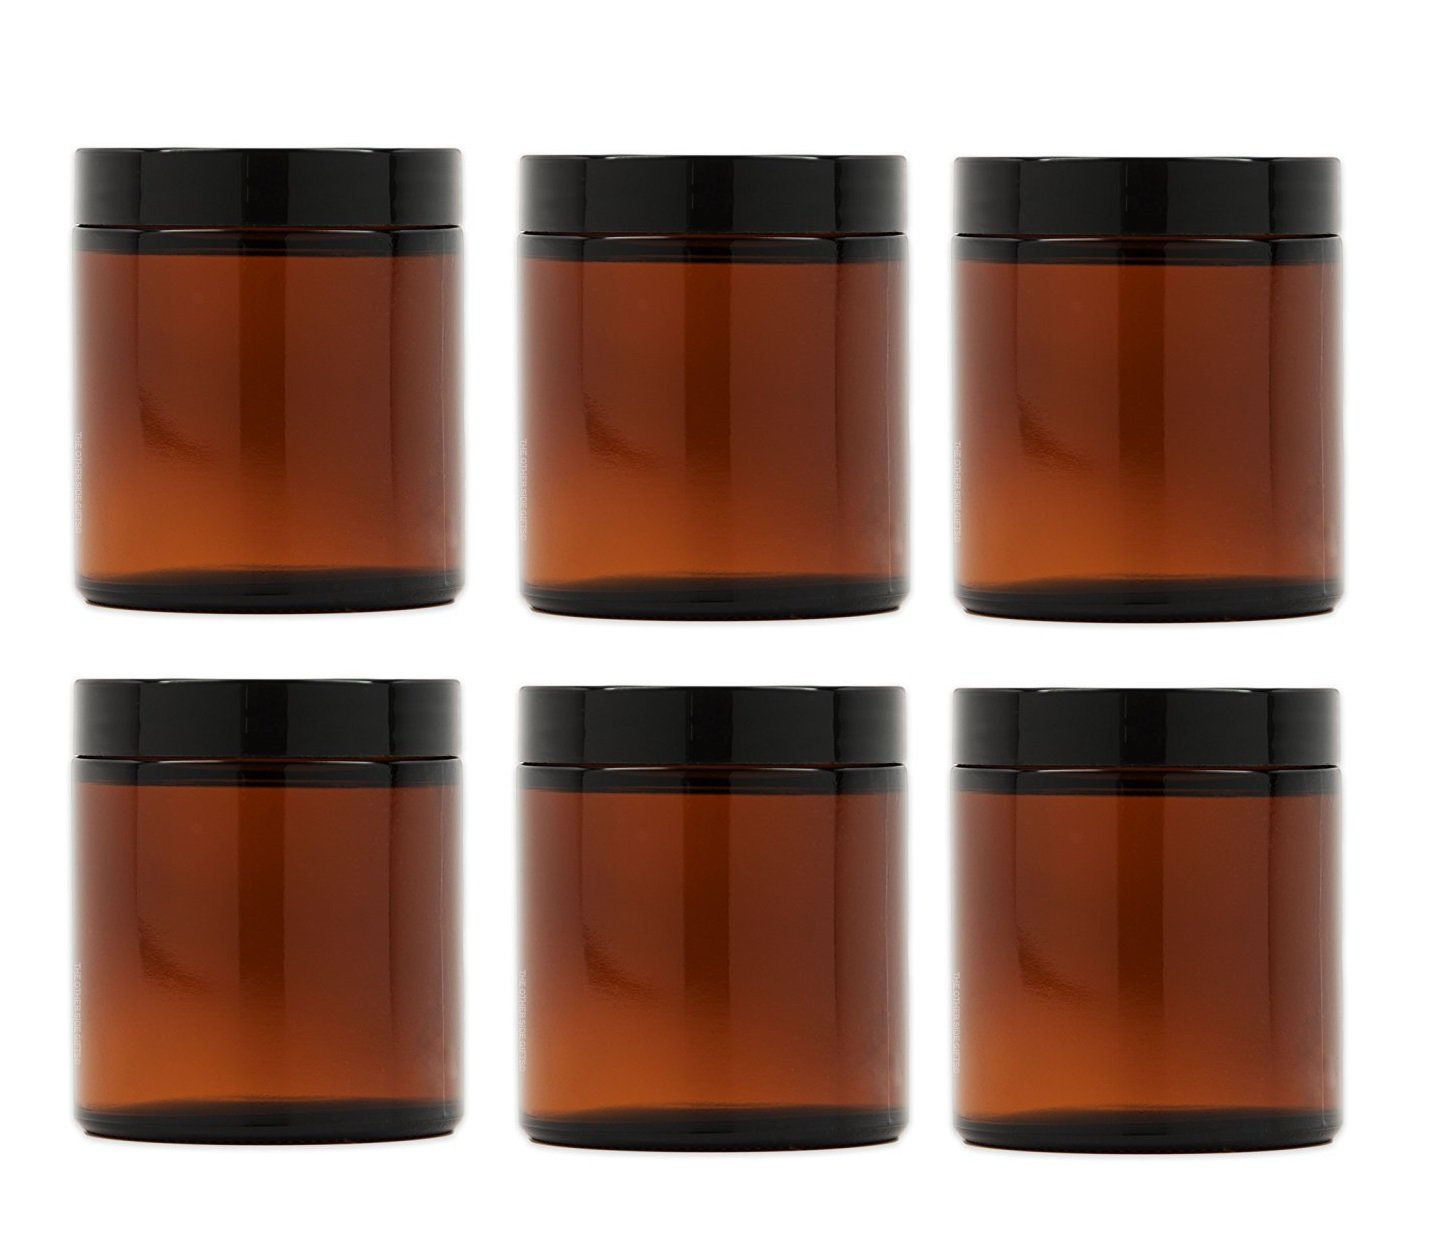 4 Oz AMBER Glass Jar Straight Sided with Black Lid - Pack of 6 (4 OZ, Amber) Premium Vials